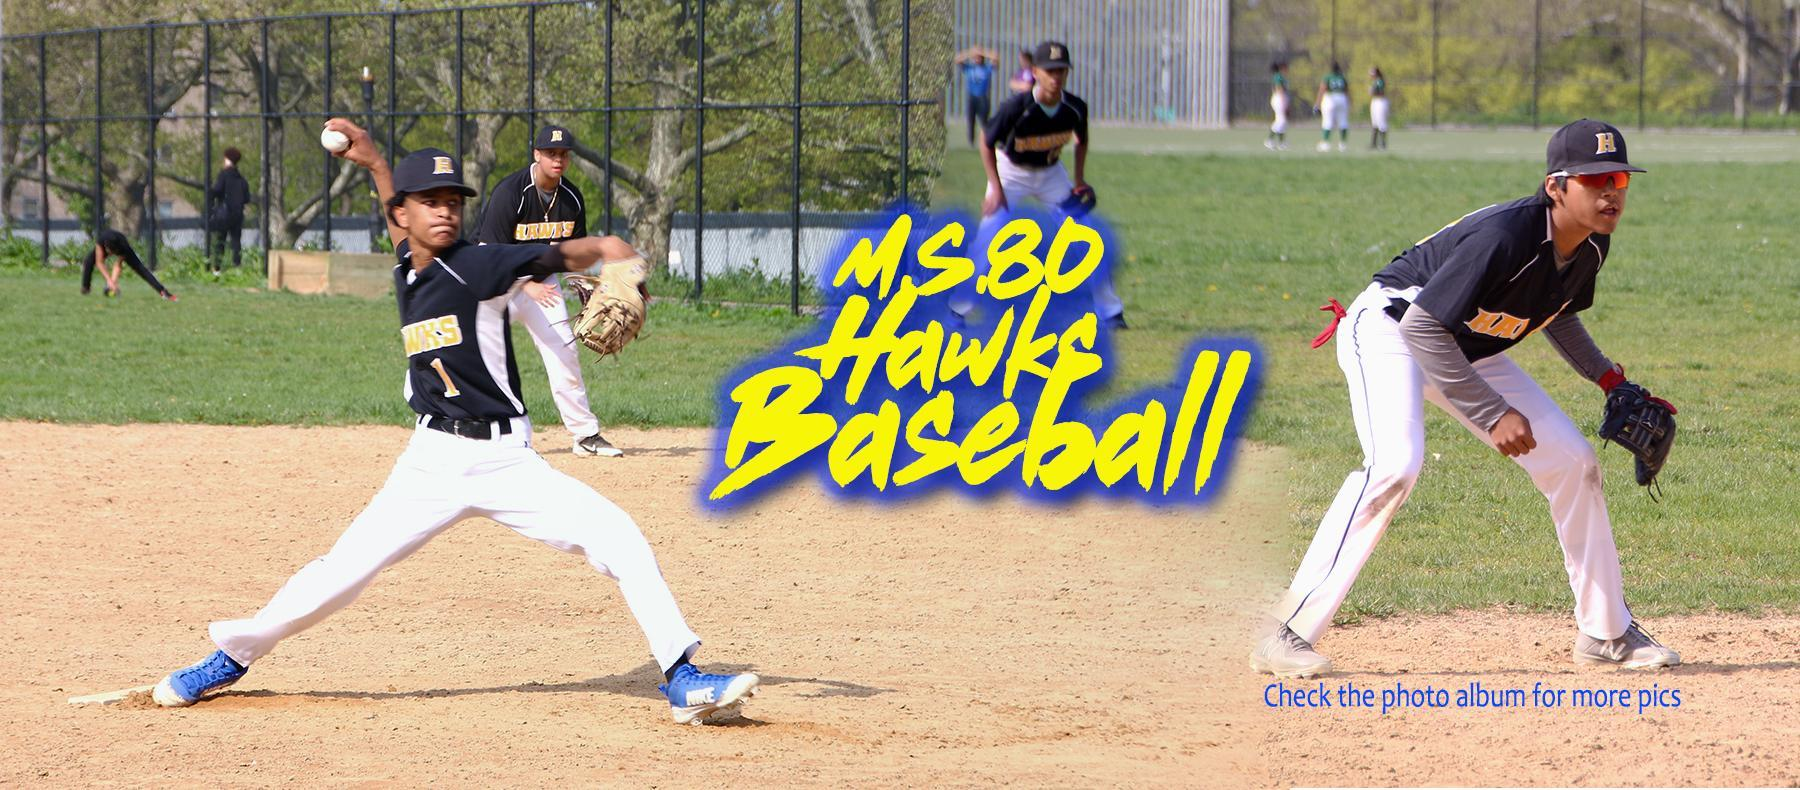 boys baseball team banner for website